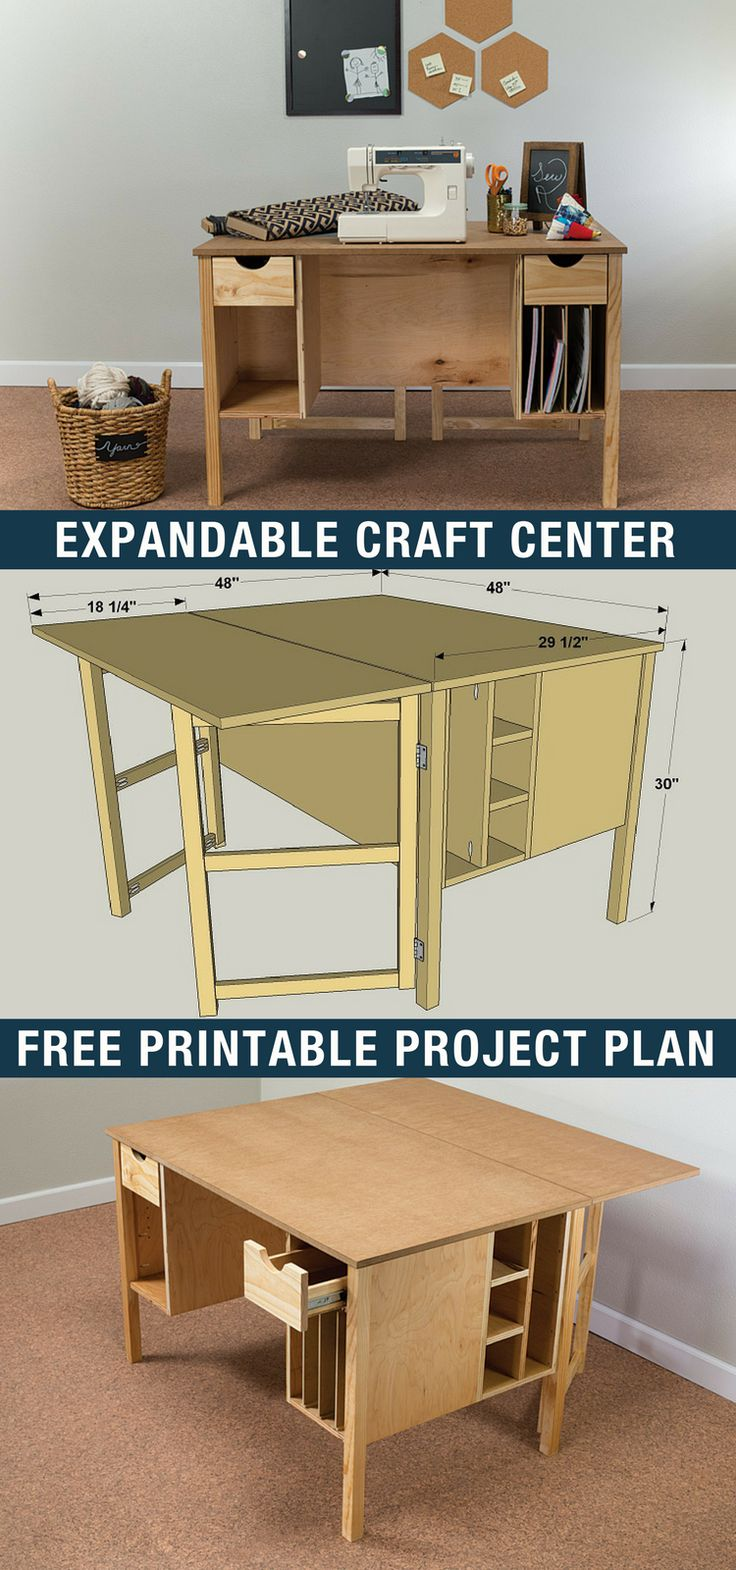 Diy craft room furniture - Diy Expandable Craft Center Free Printable Project Plans On Buildsomething Com Whether You